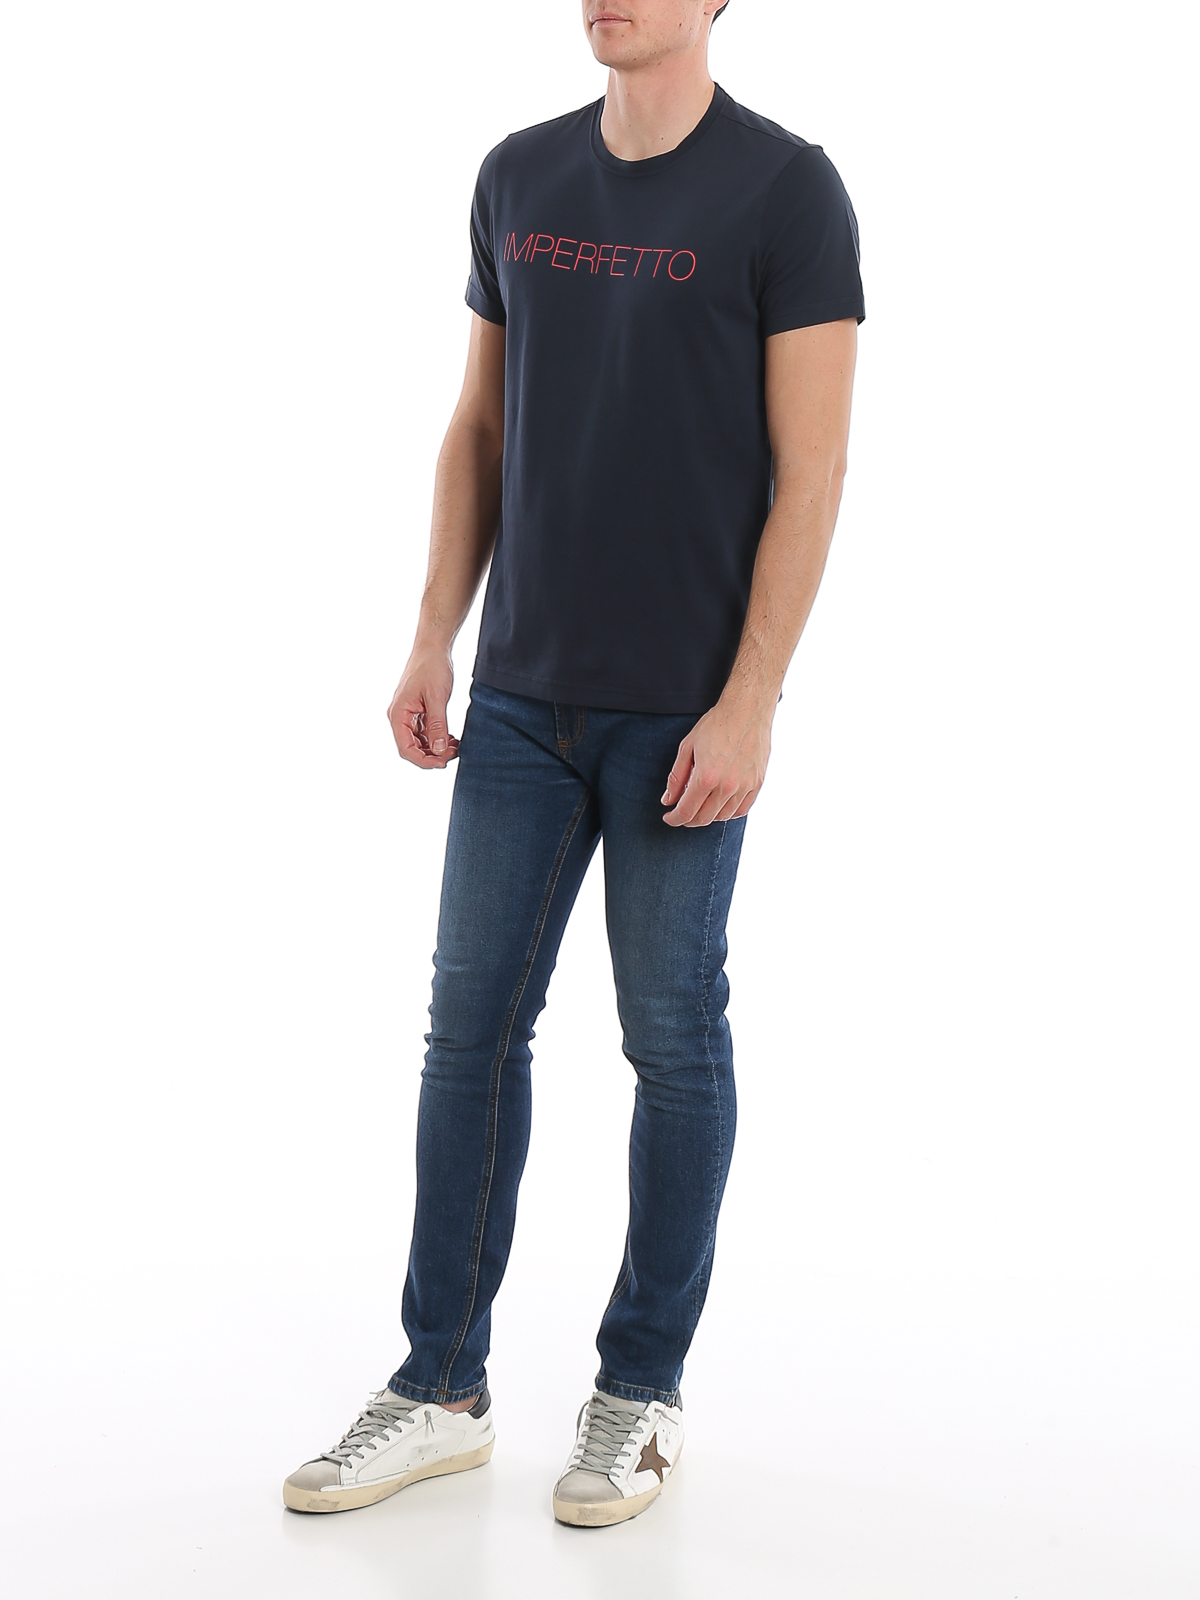 Picture of Aspesi | Imperfetto T-Shirt